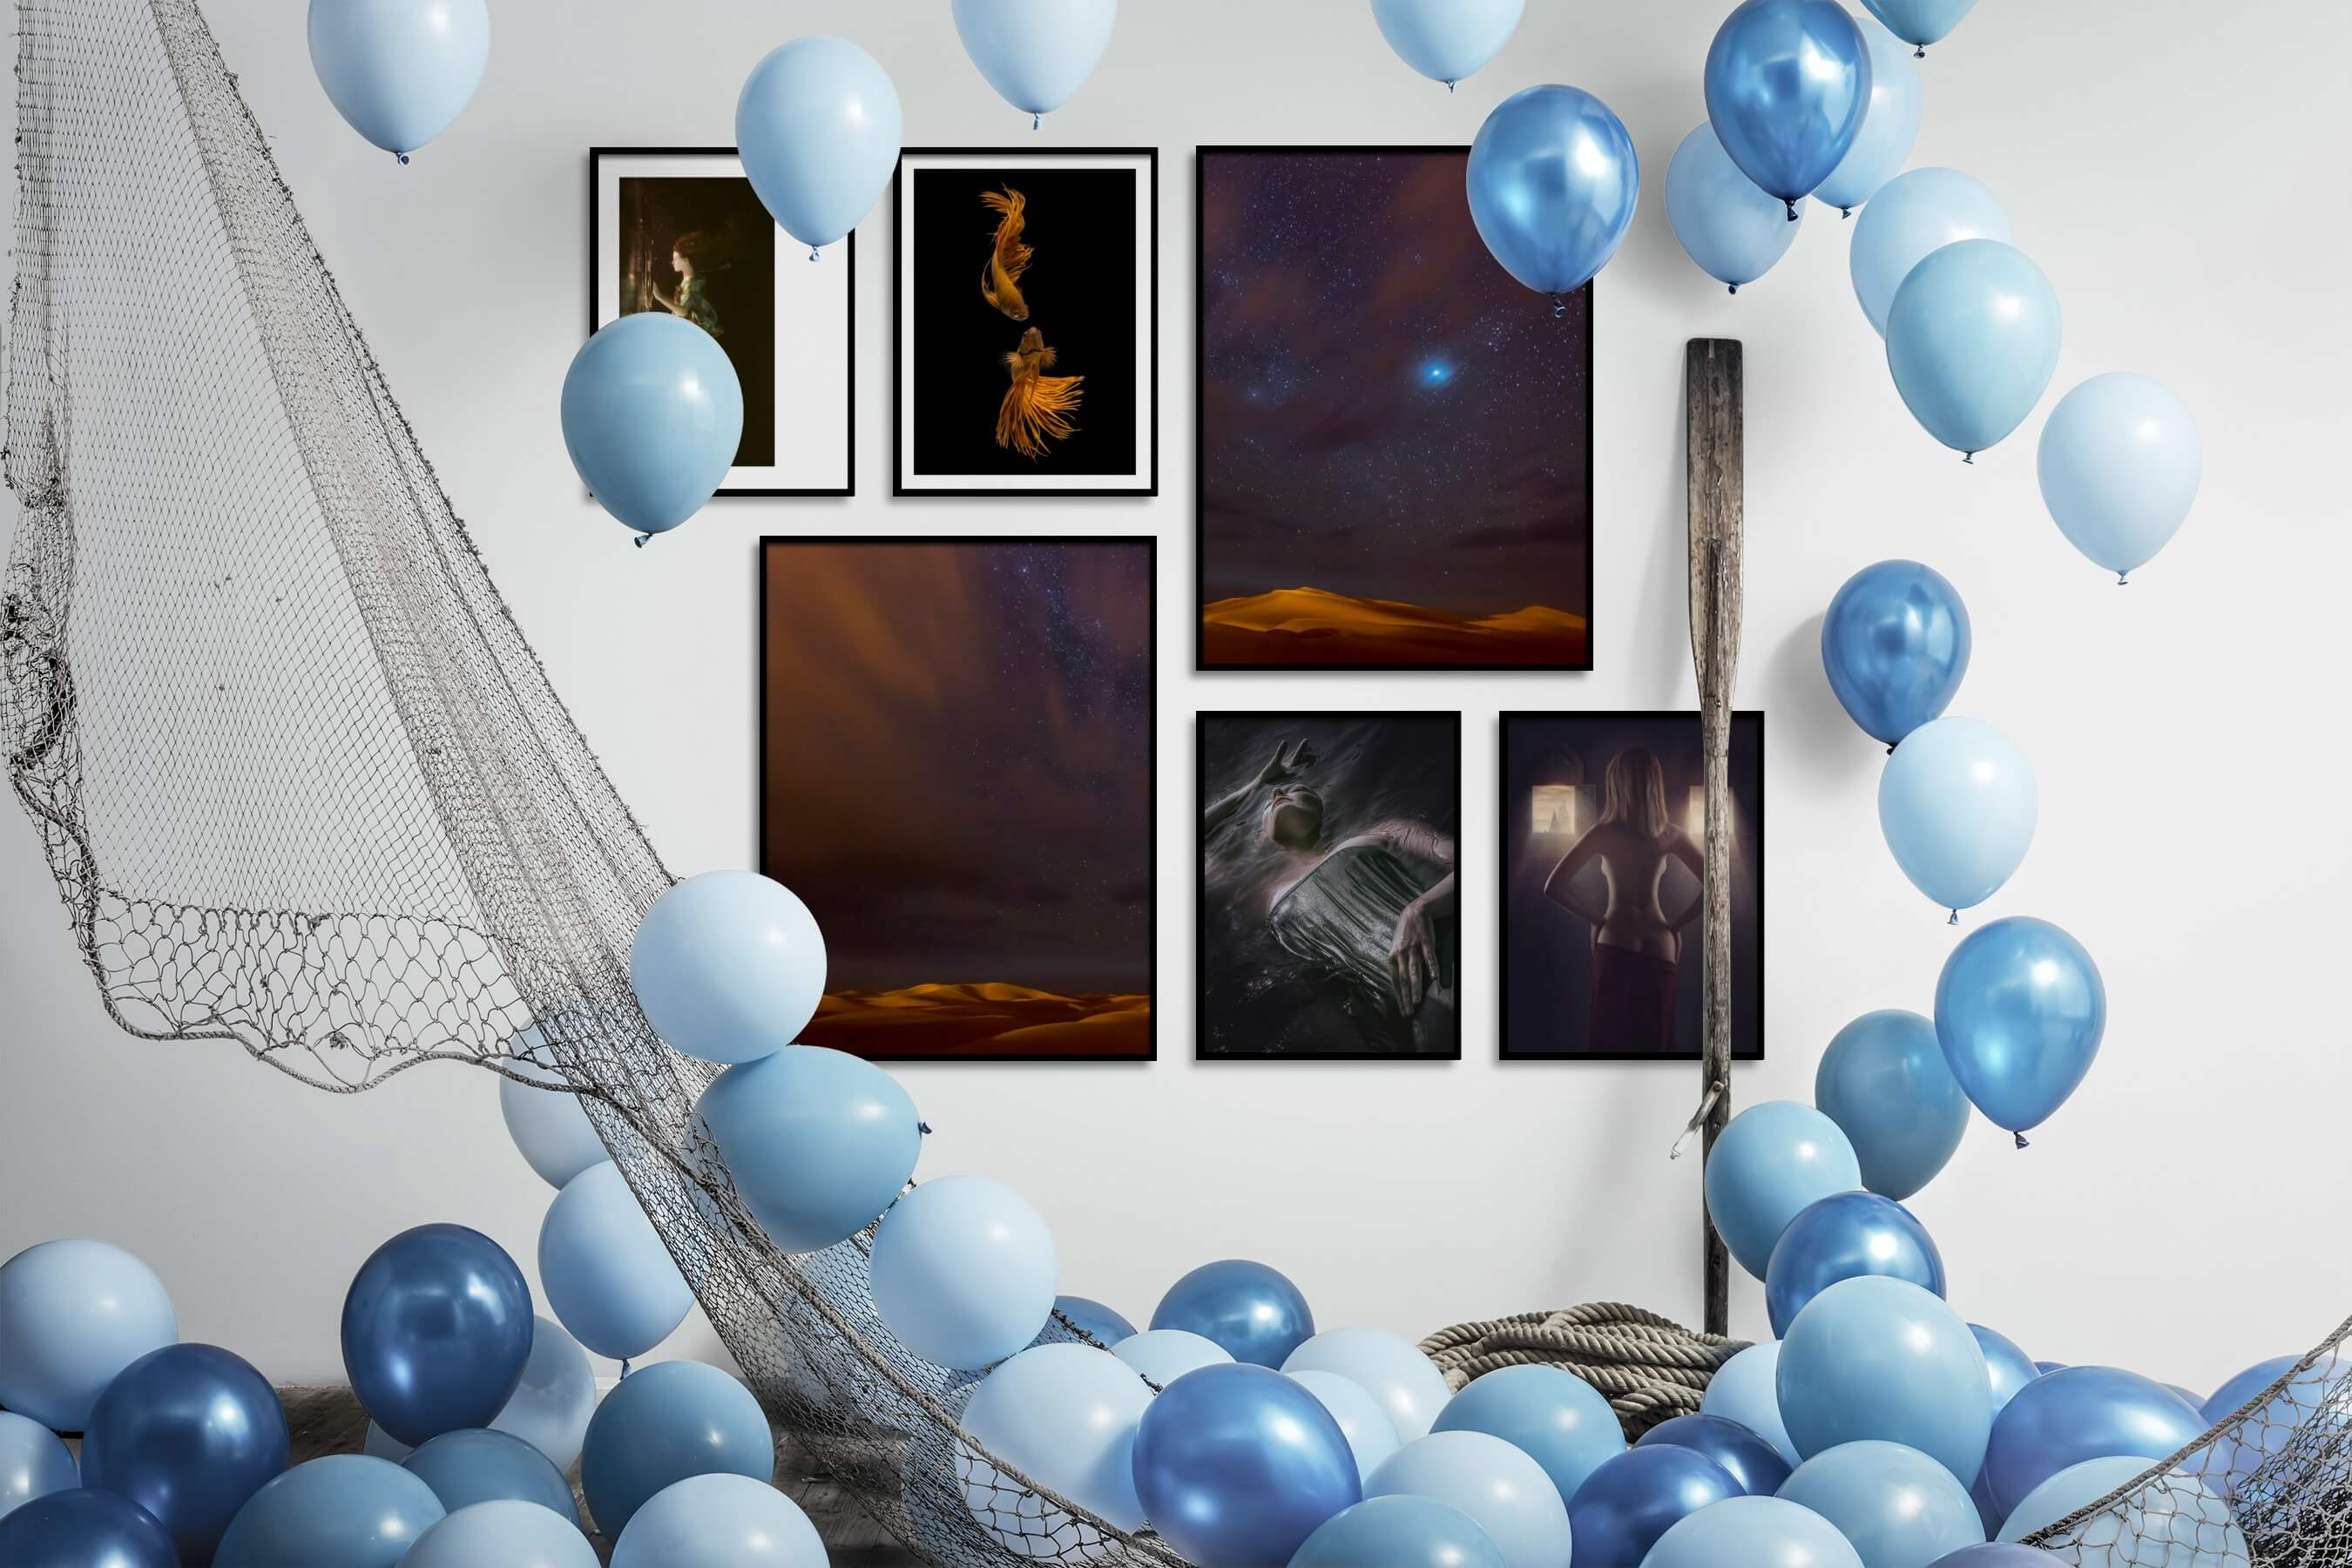 Gallery wall idea with six framed pictures arranged on a wall depicting Fashion & Beauty, Beach & Water, Dark Tones, For the Minimalist, Animals, For the Moderate, Nature, and Artsy